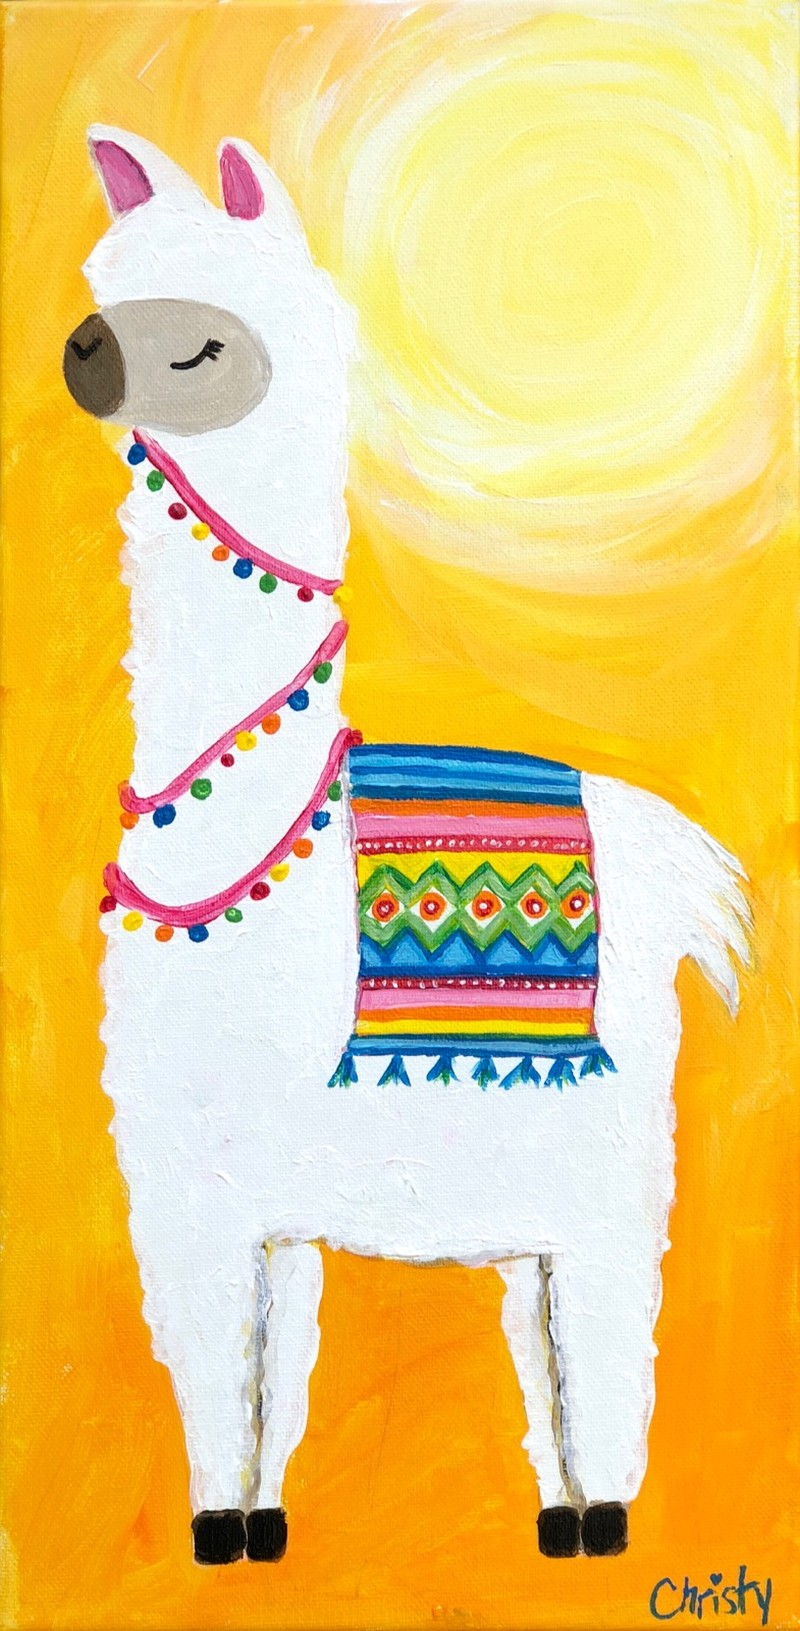 No Problem Llama- TAKE HOME PAINT KIT - - ORDER TODAY! CURB SIDE PICK UP TOMORROW 2PM-5PM!